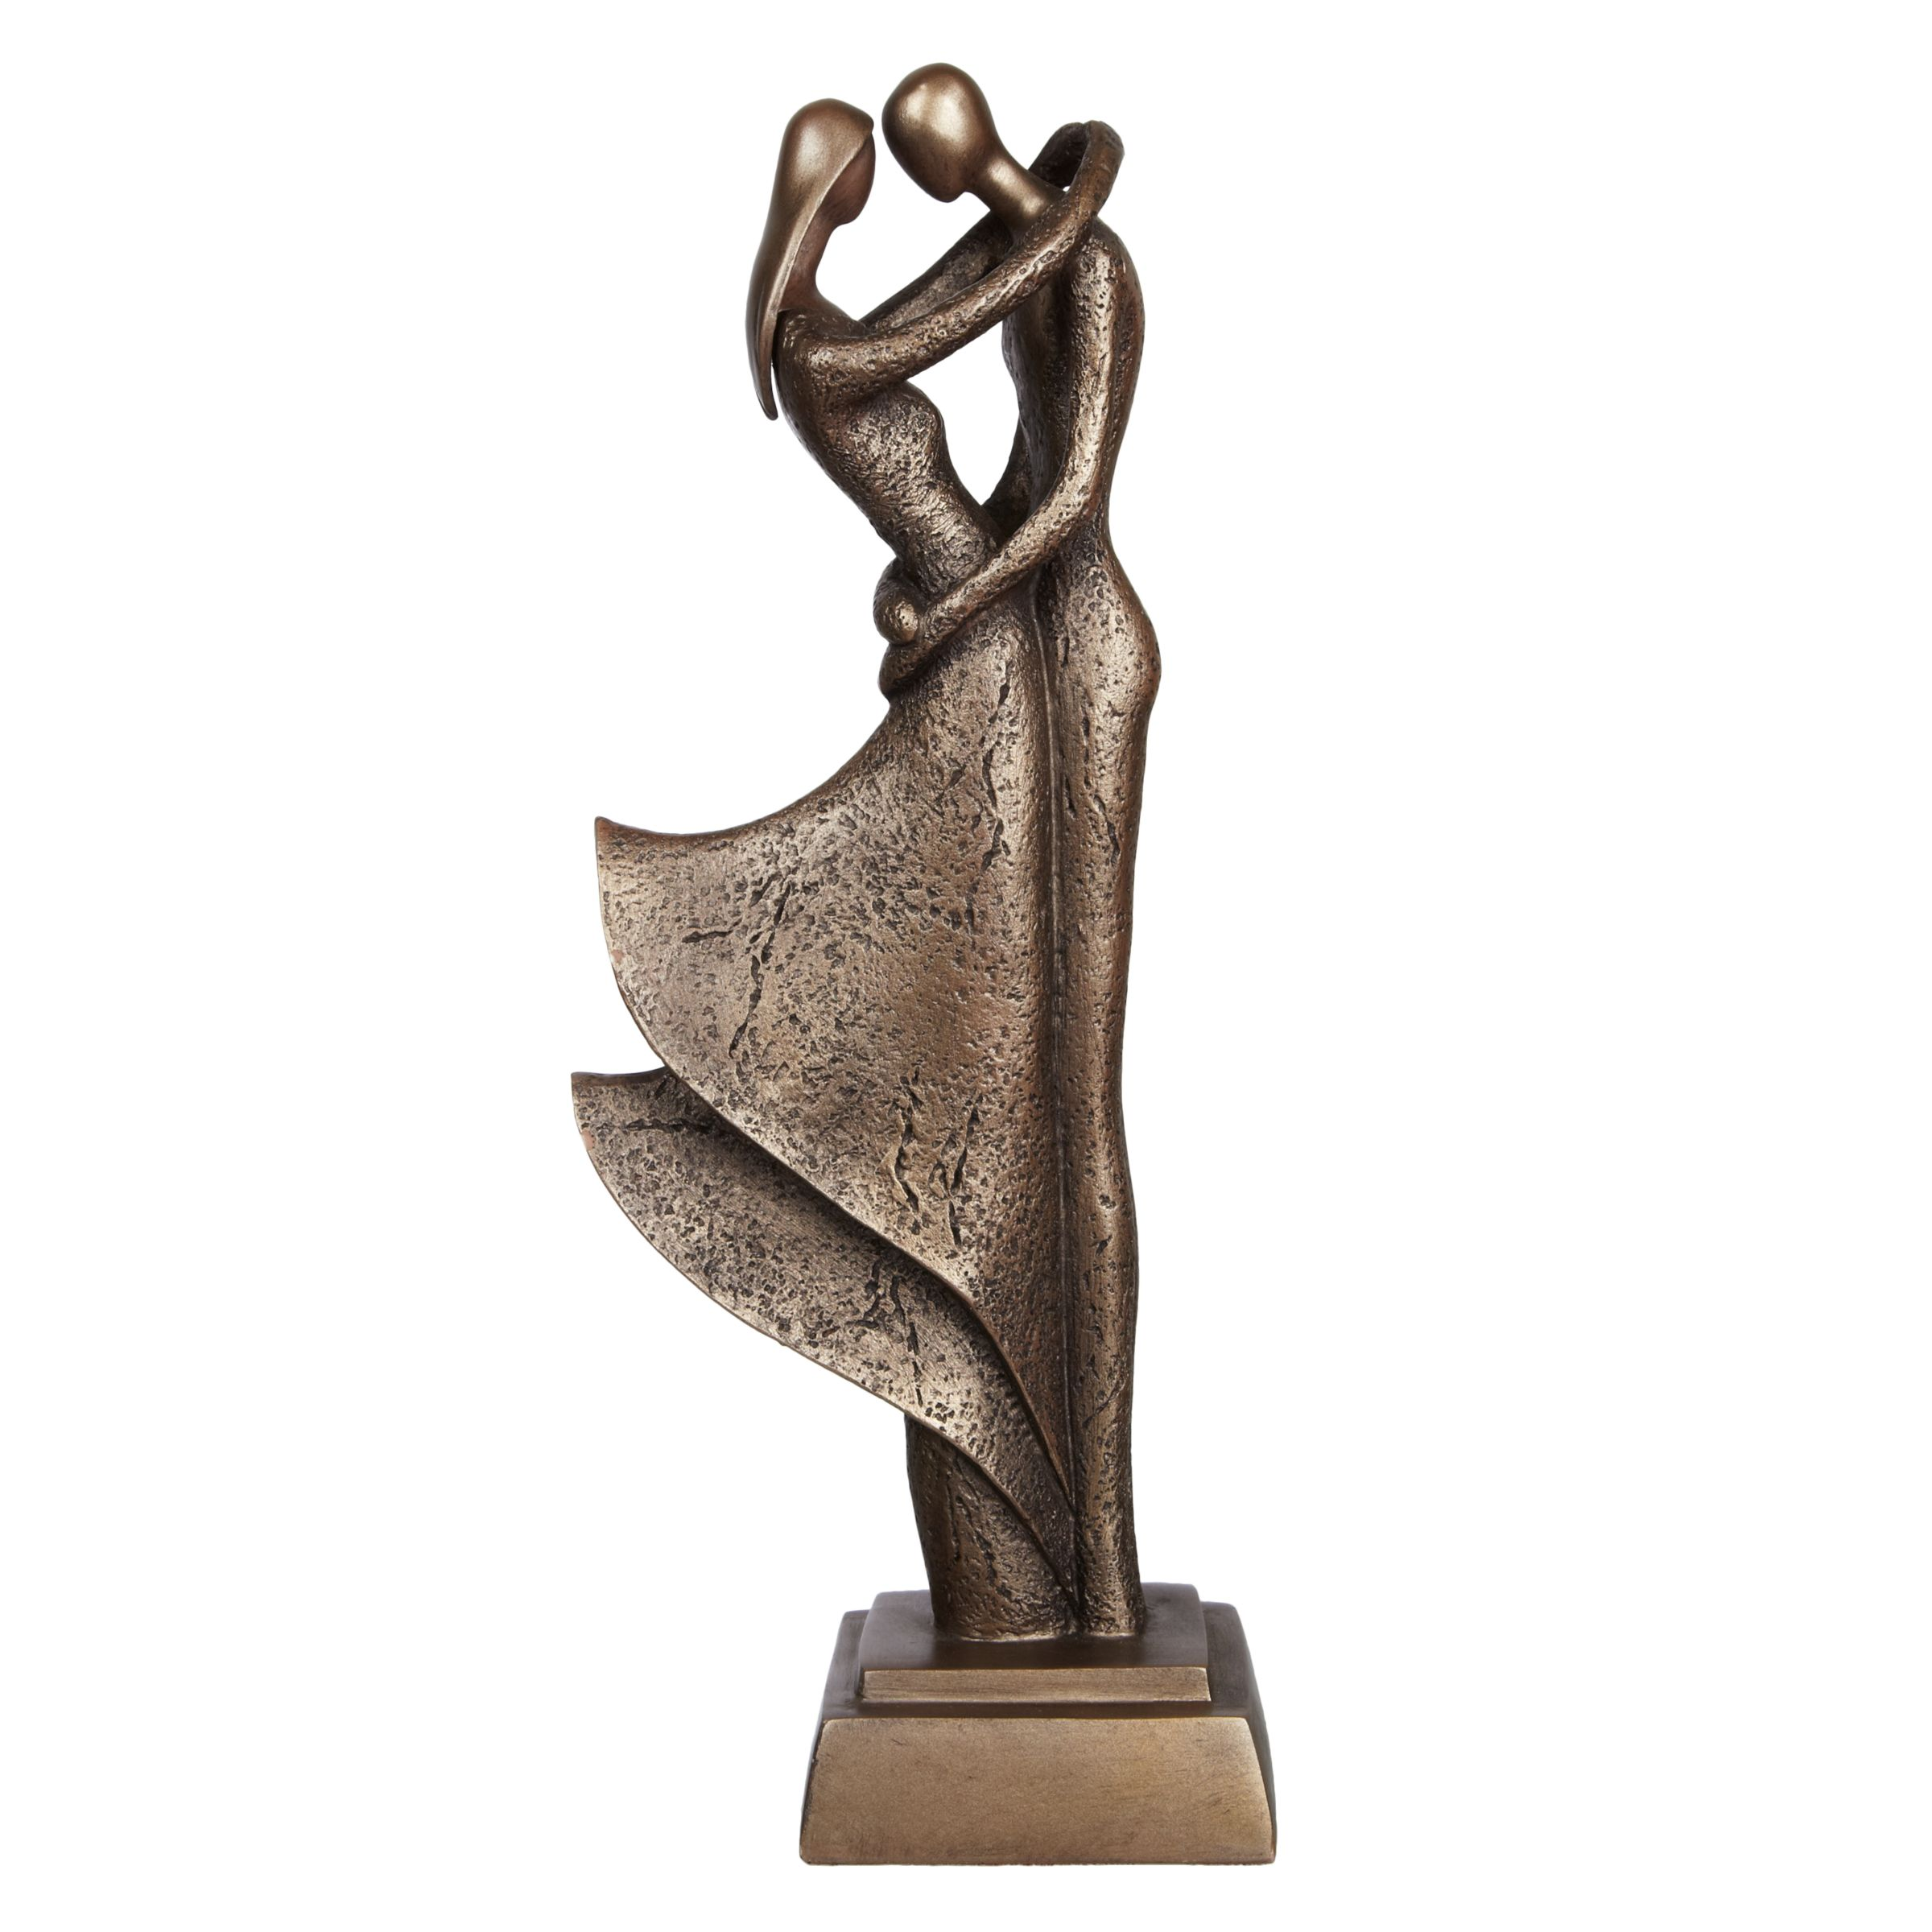 Frith Sculpture Frith Sculpture Strictly Ballroom by Mitko Kavrikov, H30cm